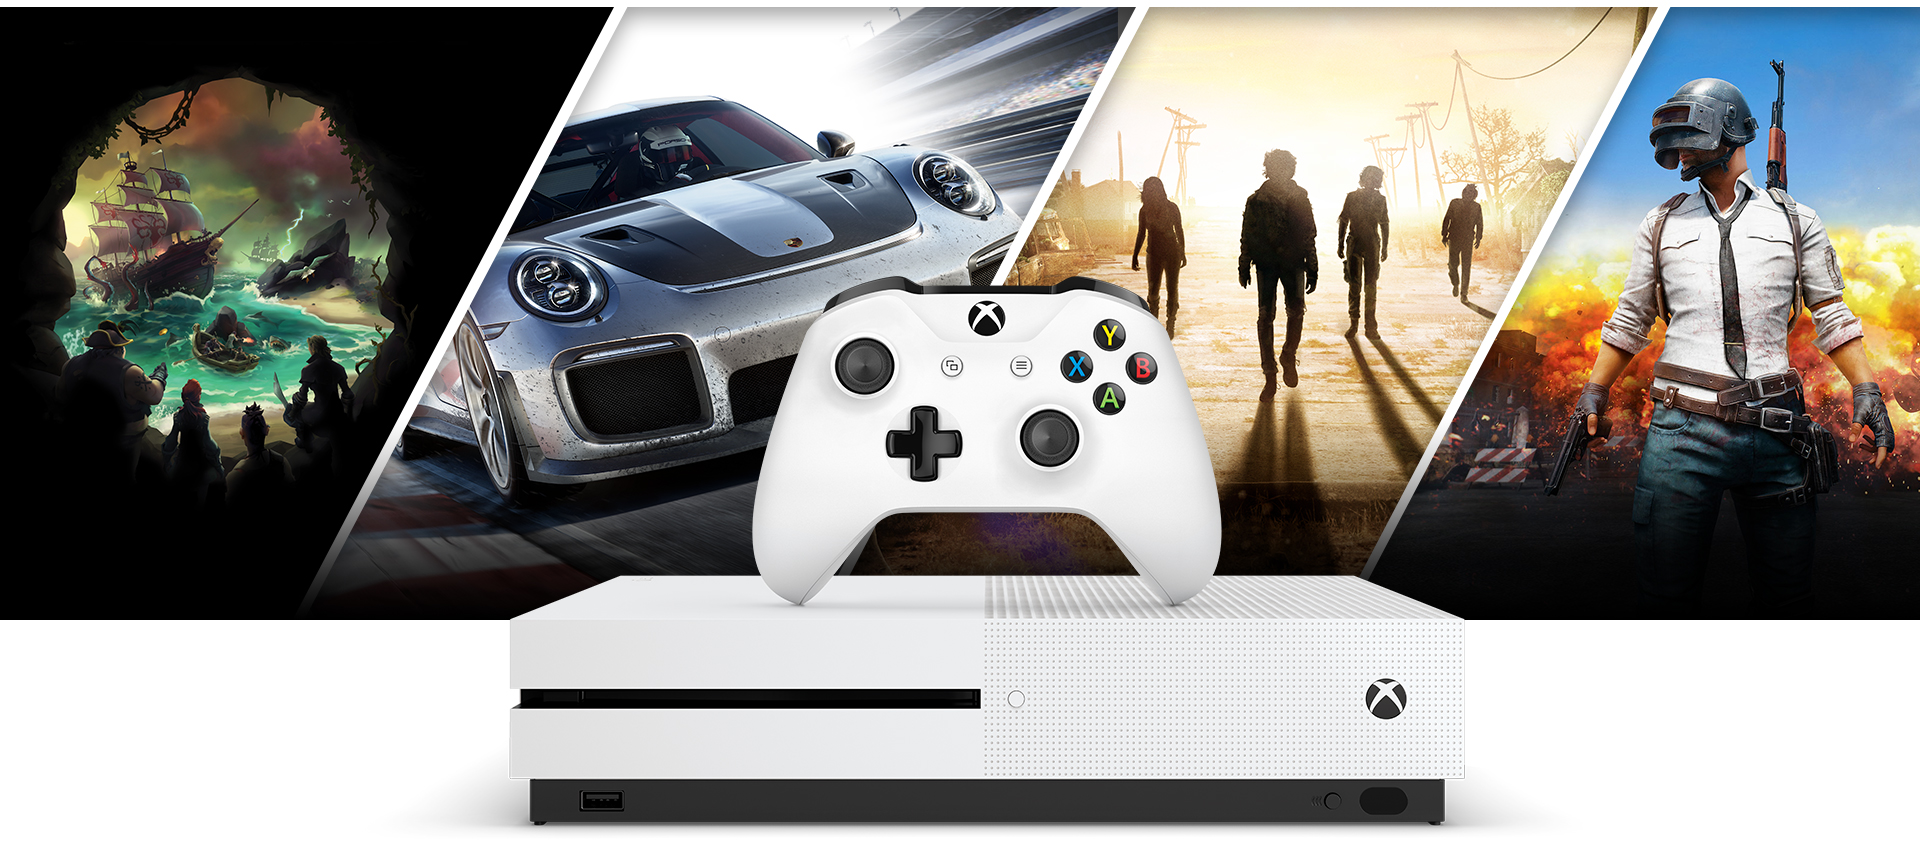 Gráficos de Sea of Thieves Forza 7 State of Decay 3 y PlayerUnknown's Battlegrounds detrás de una consola Xbox One S y un control Xbox blanco